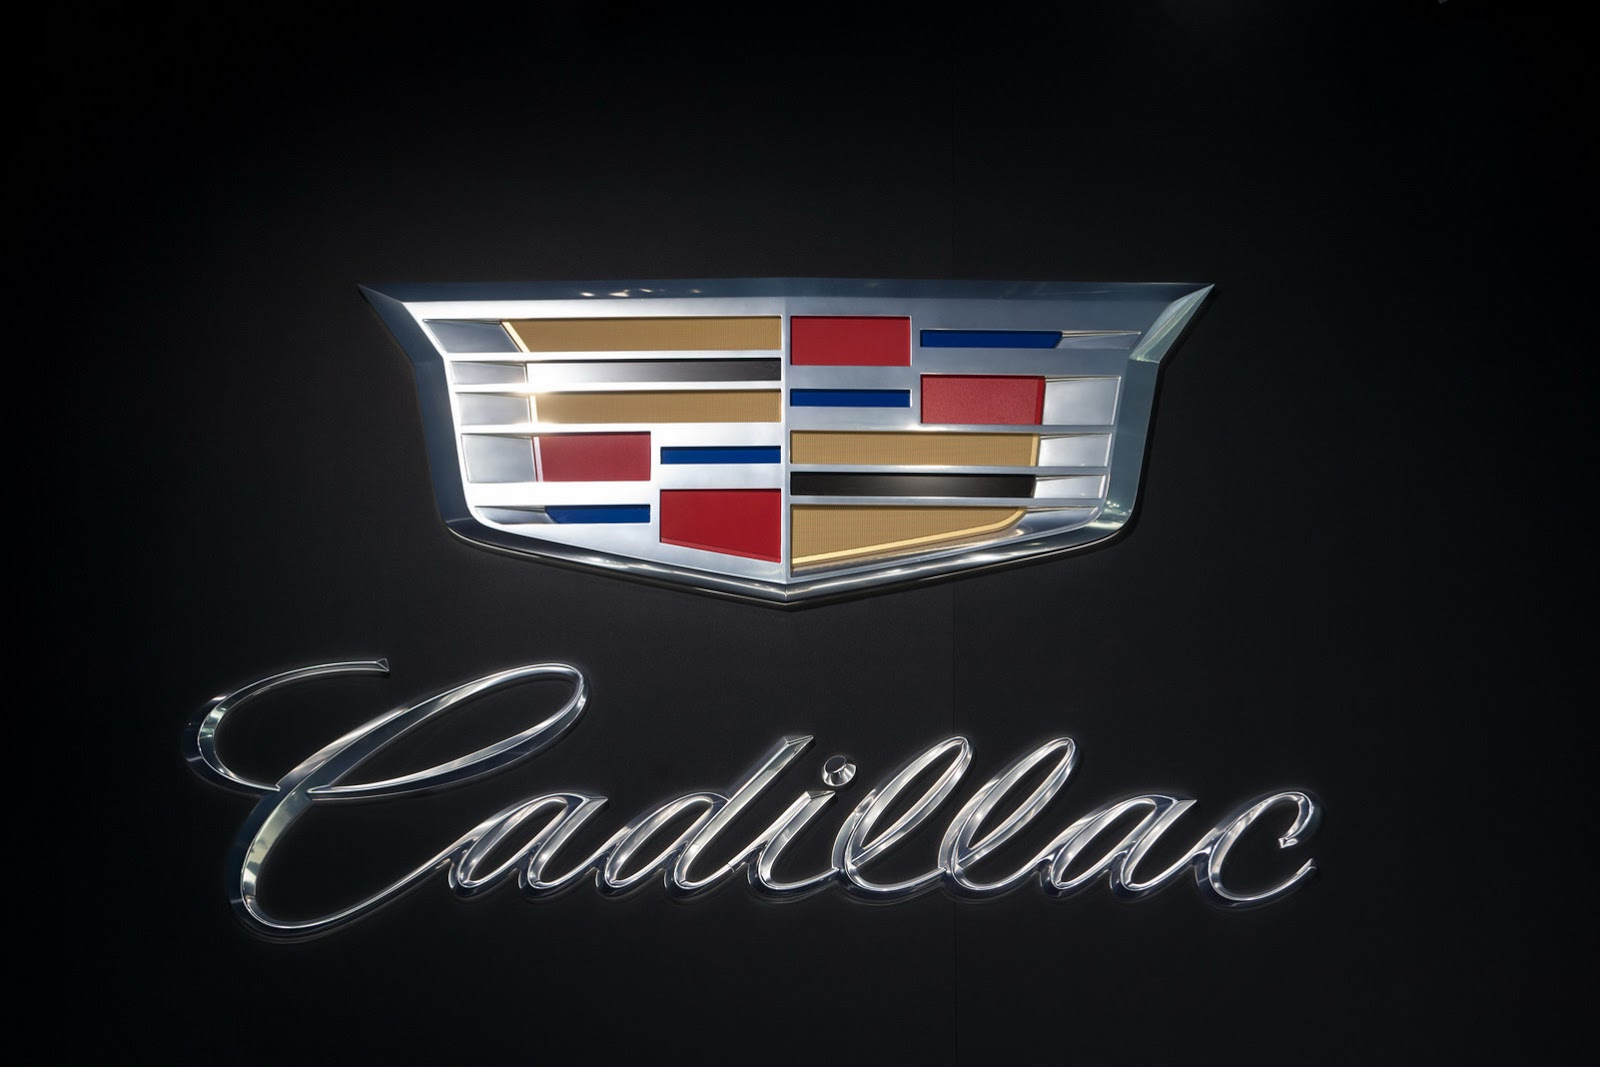 black cadillac desktop wallpaper 931